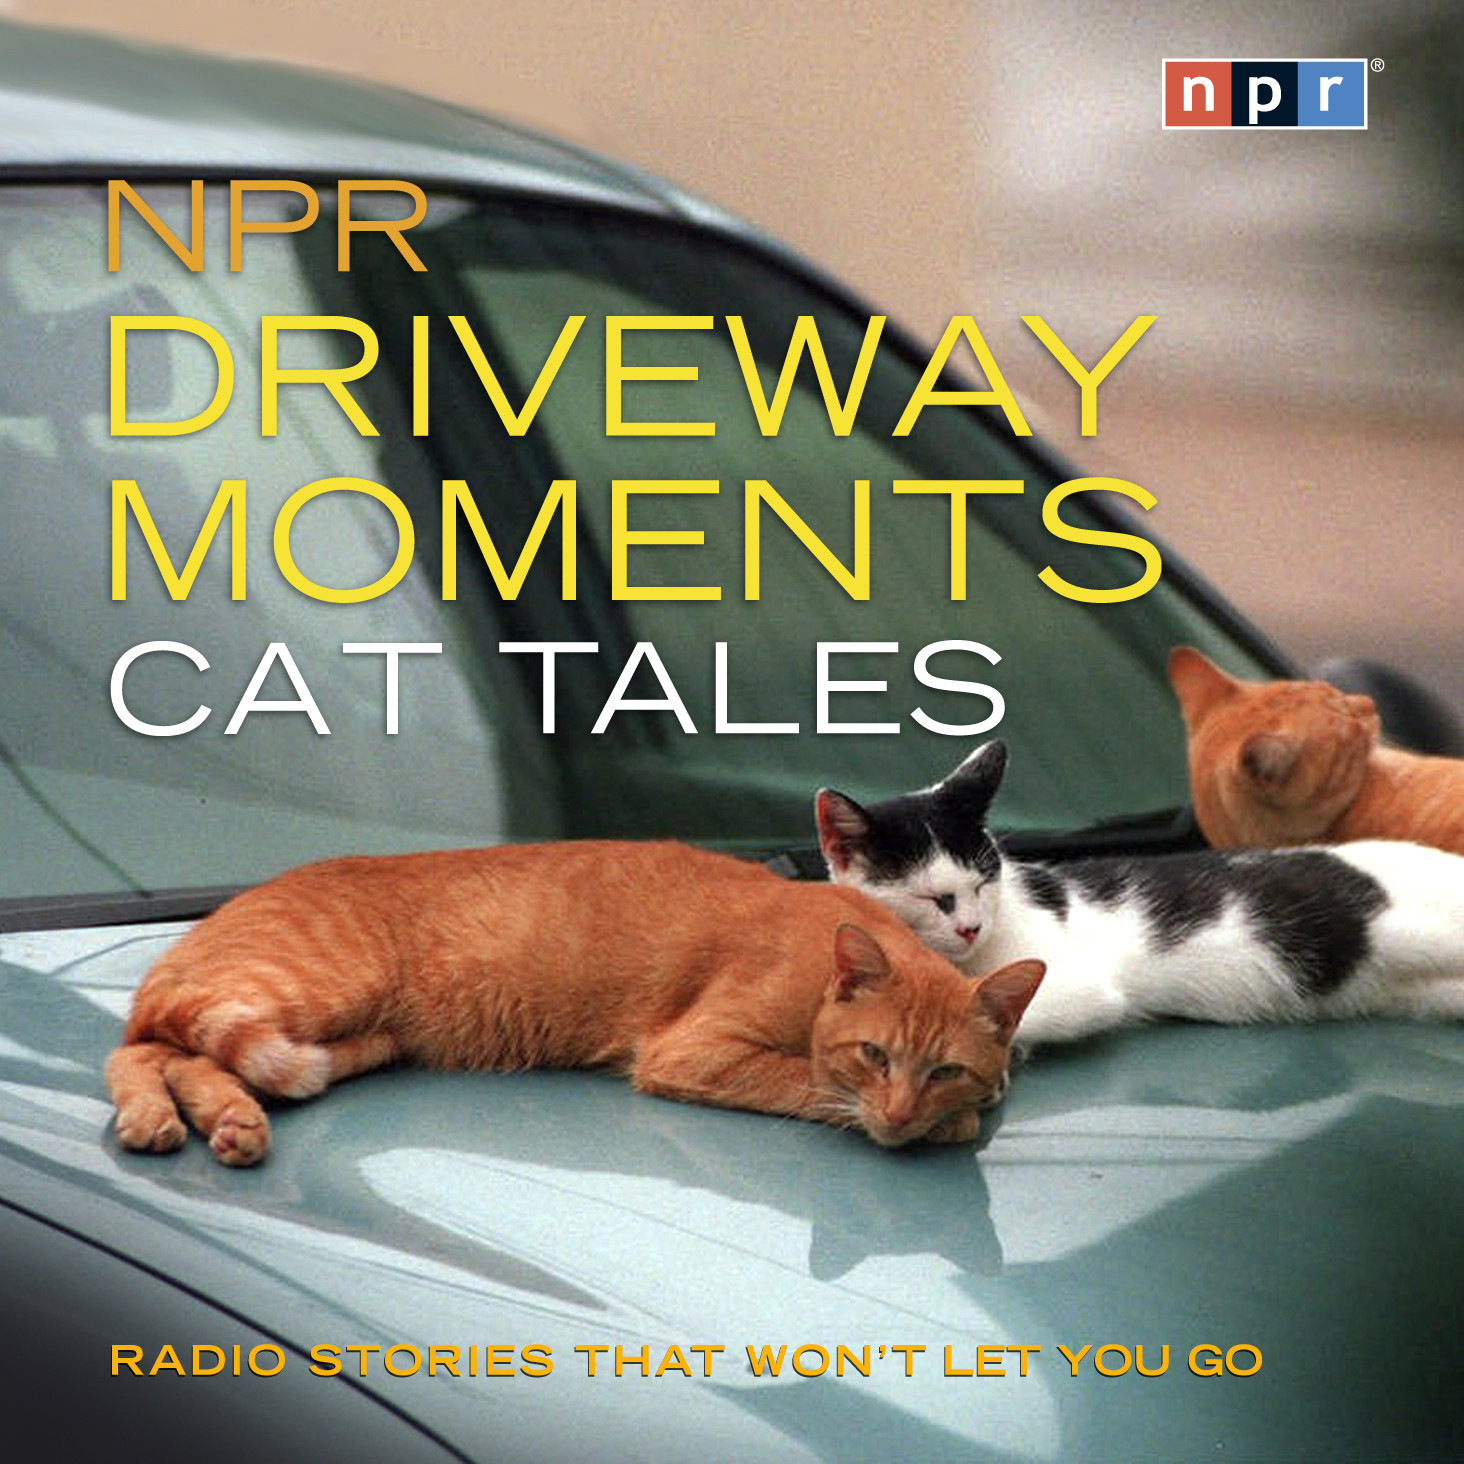 Printable NPR Driveway Moments Cat Tales: Radio Stories That Won't Let You Go Audiobook Cover Art